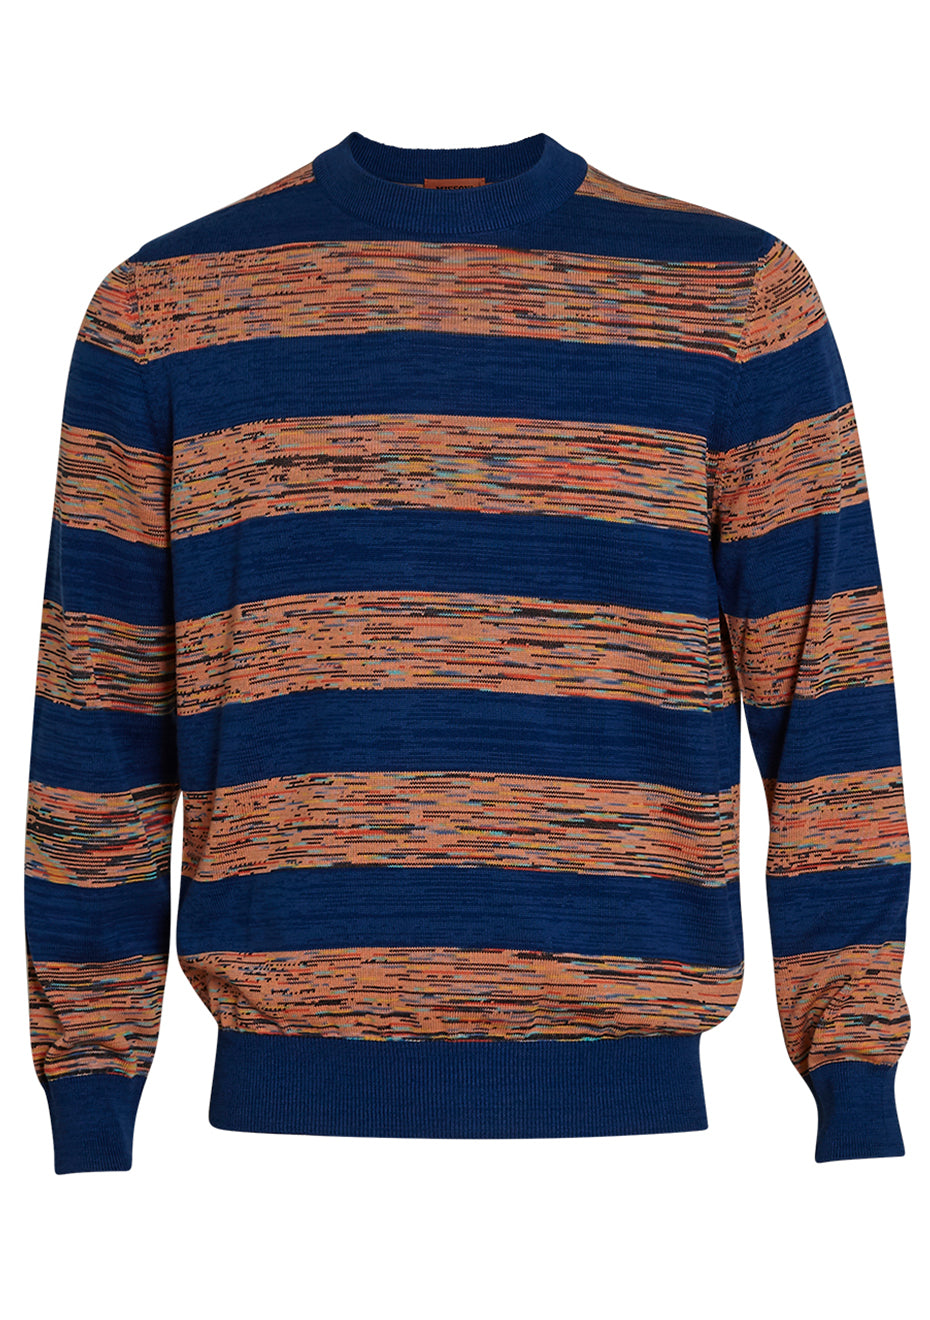 Blue Striped Crewneck Sweater